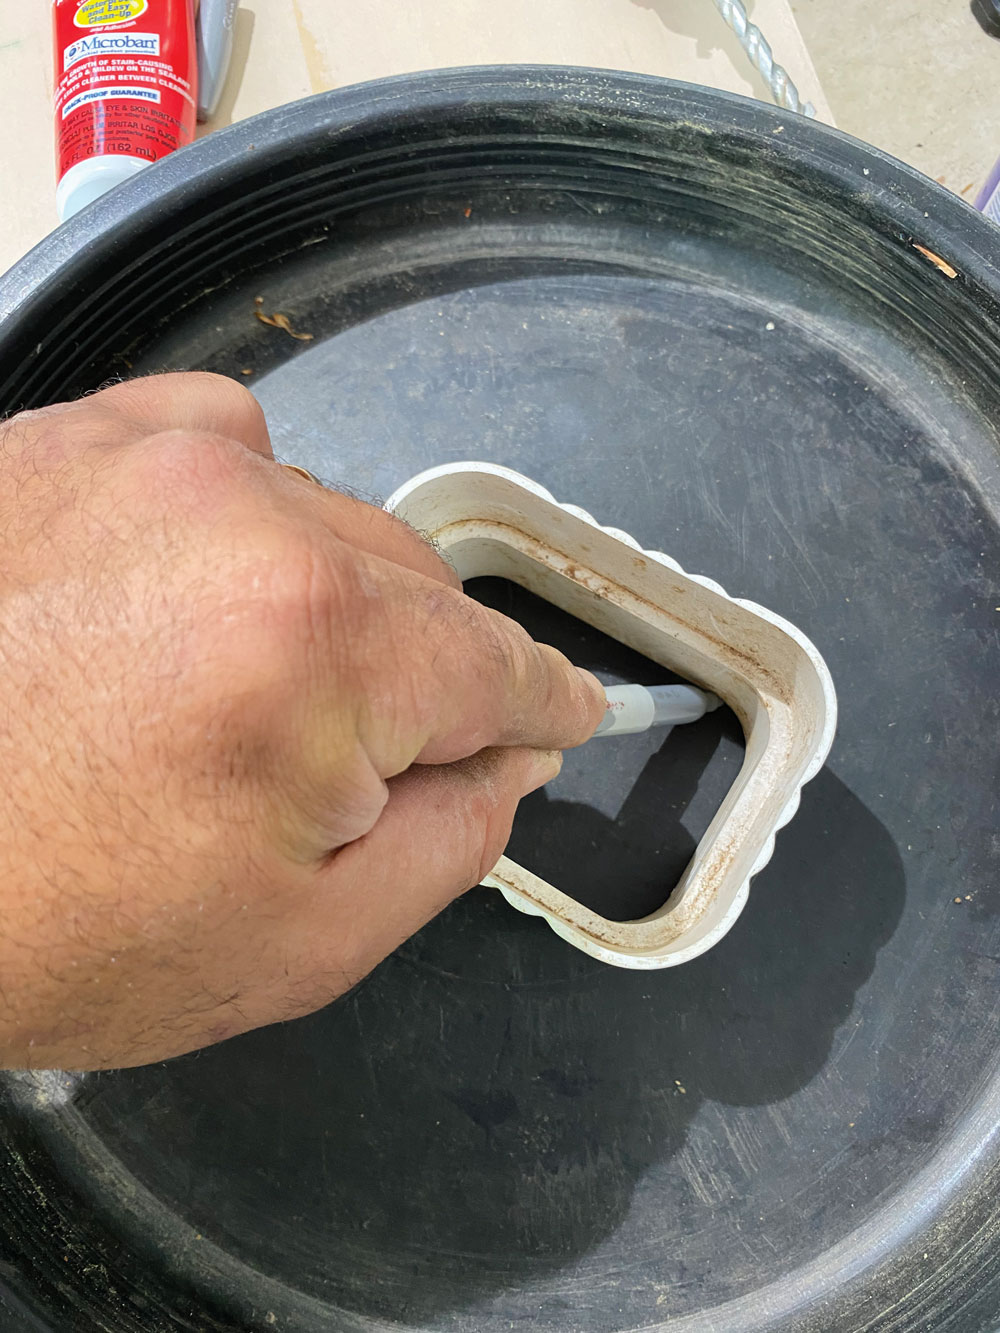 Use a marker to draw an outline of the downspout or downspout adapter where you want it to enter the barrel's lid